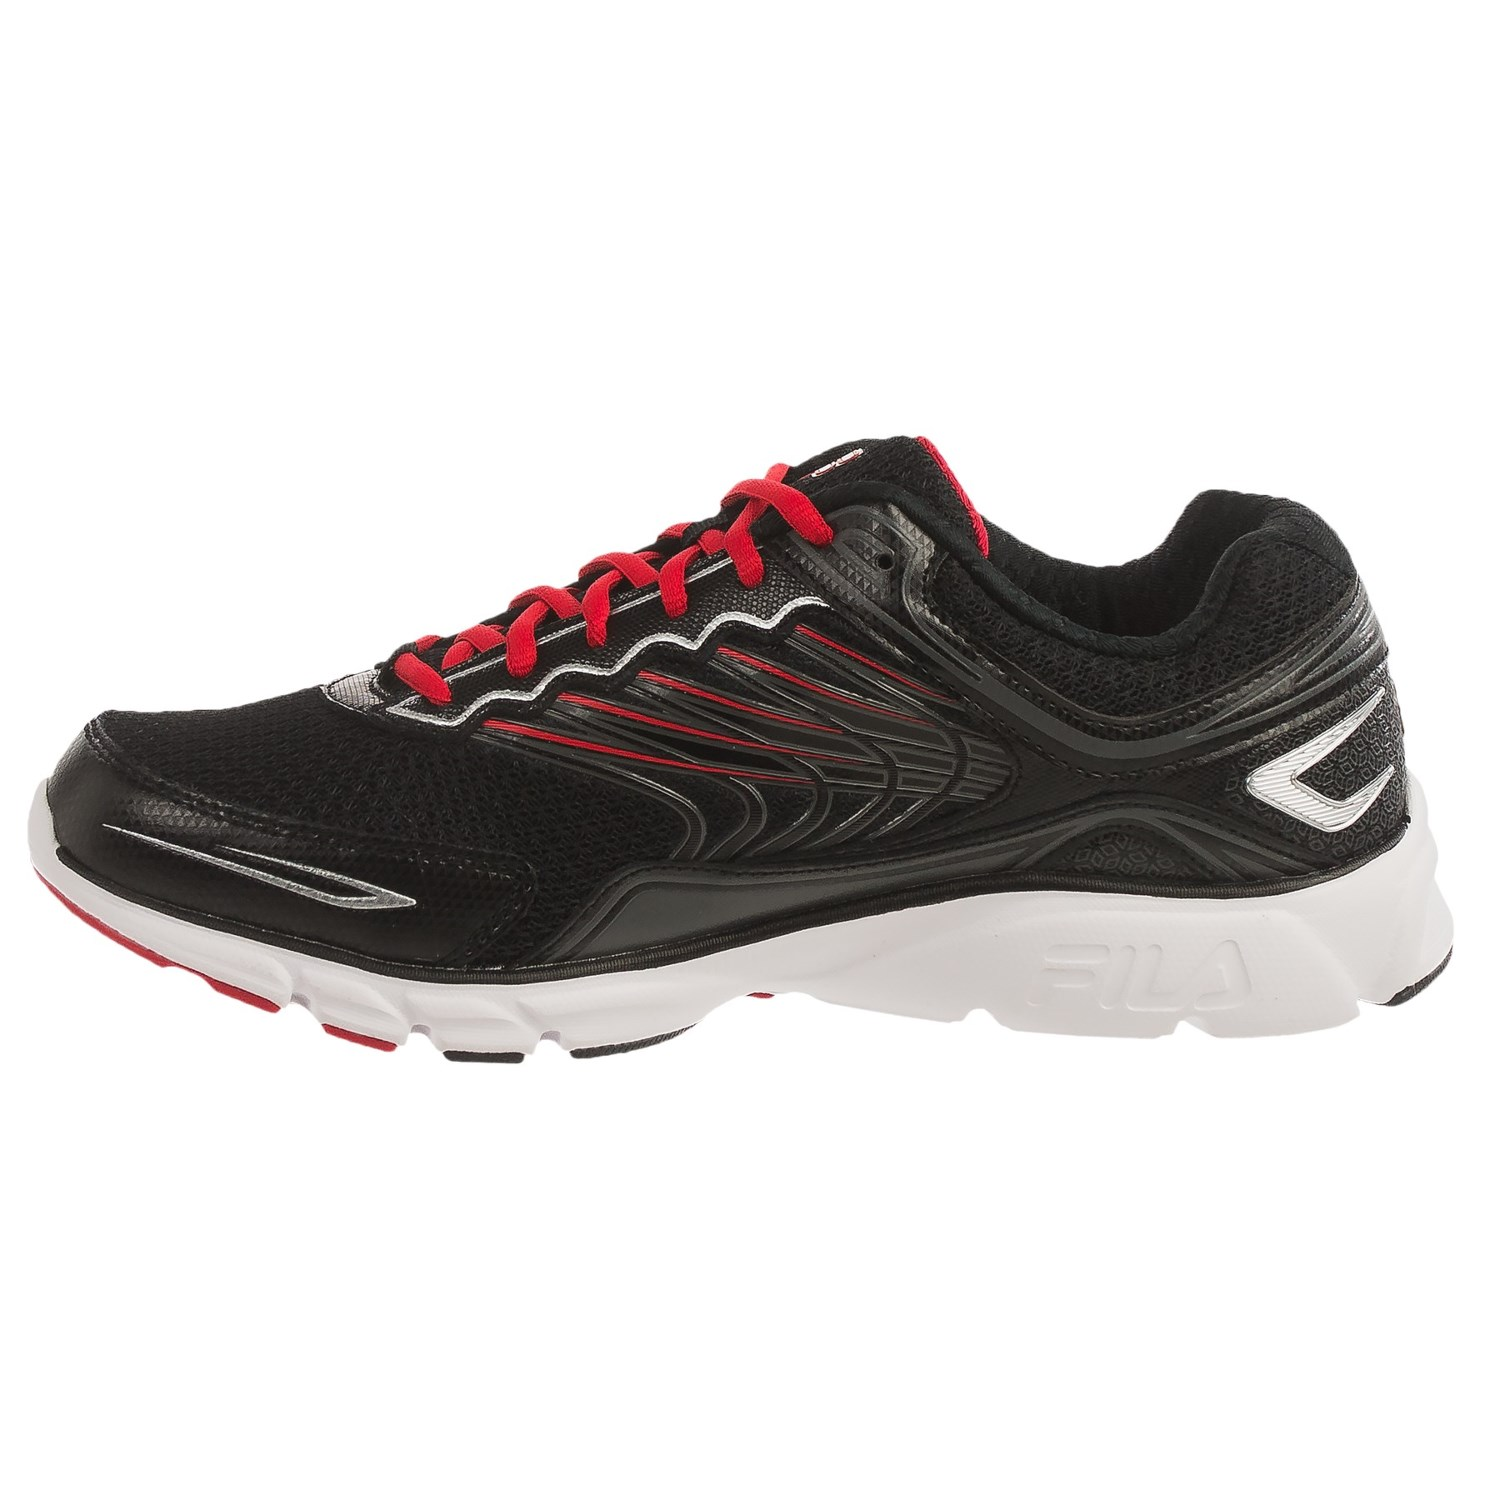 Fila Memory Maranello 4 Running Shoes For Men Save 60